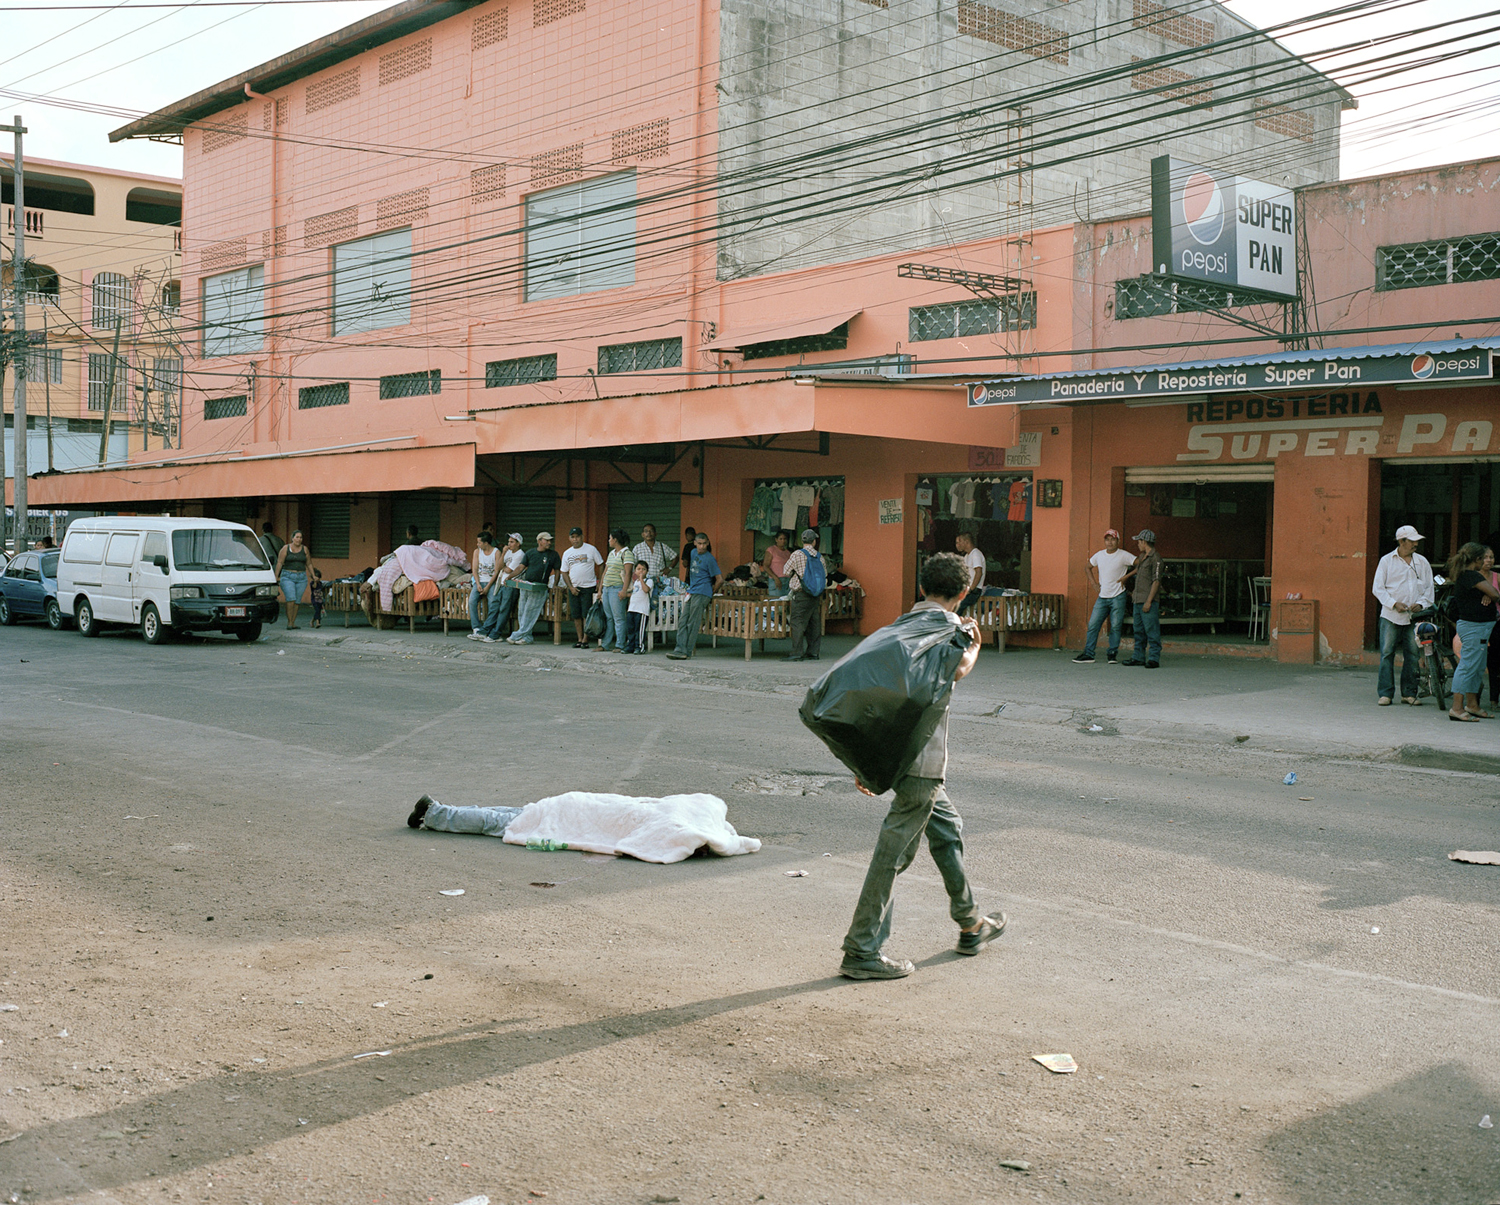 Merchants go about their business despite a body in the middle of the street in San Pedro Sula, Honduras.